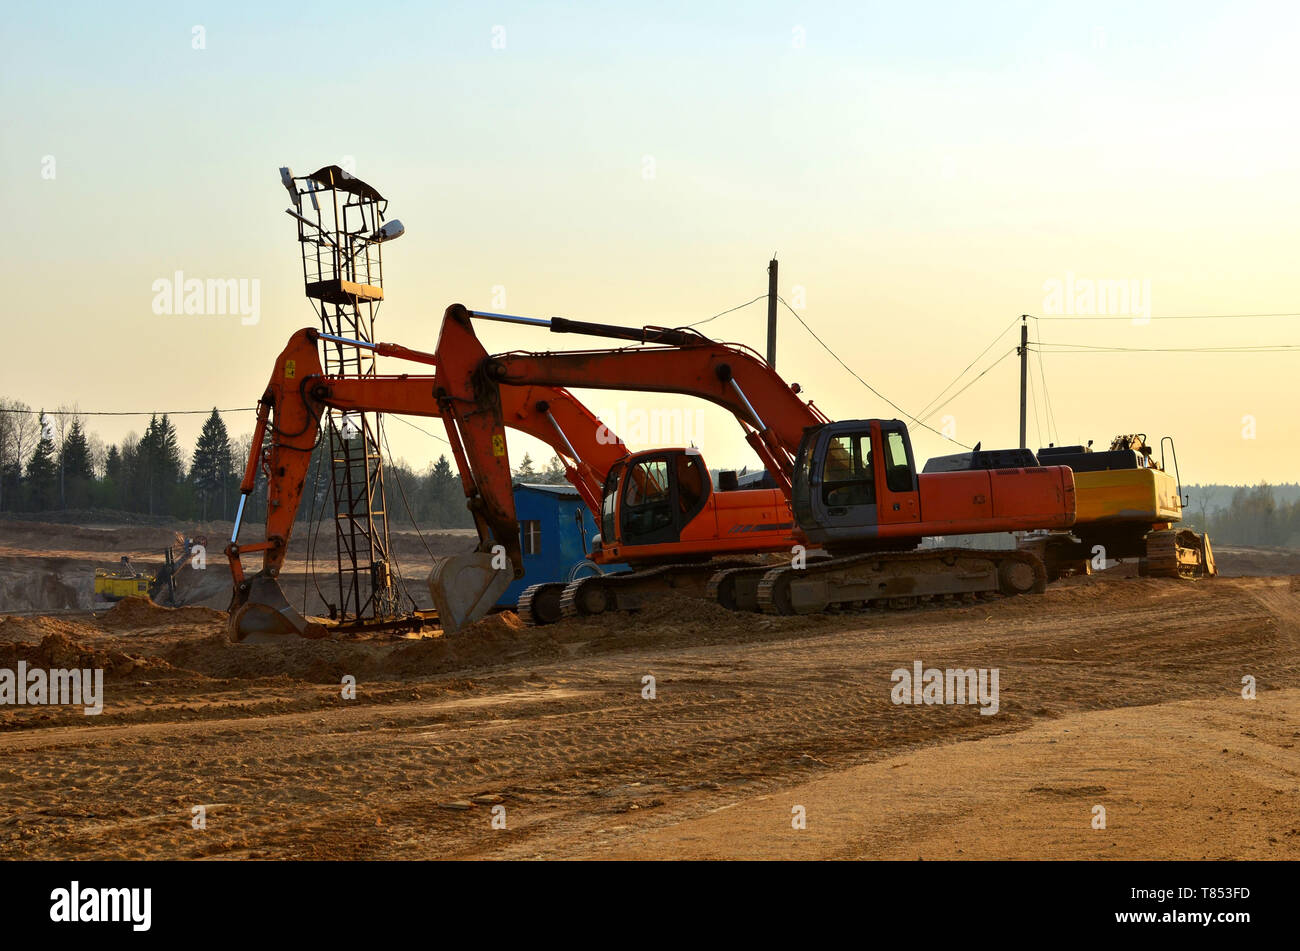 Group of the excavators in a quarry for the extraction of sand, gravel, rubble, quartz and other minerals - Image - Stock Image